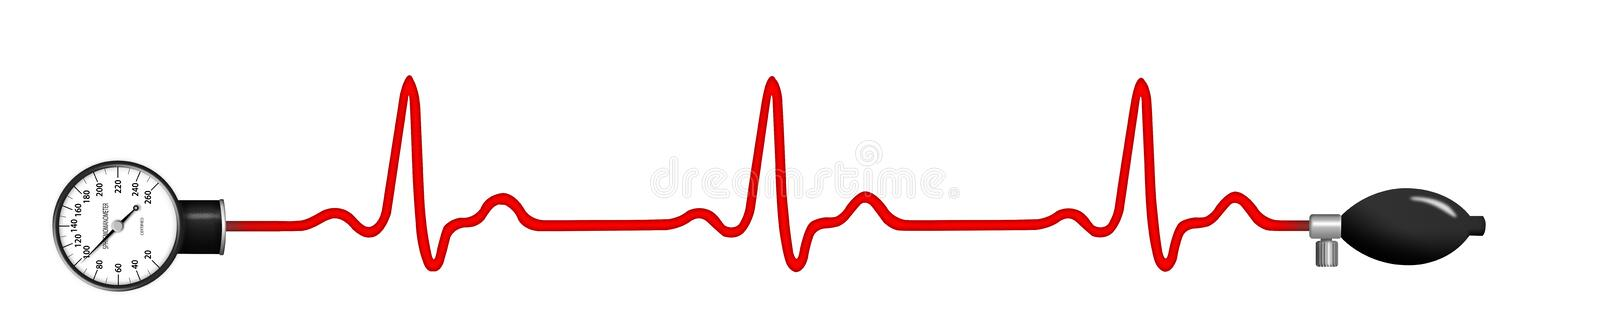 ECG graph with blood pressure gauge. Elecktrocardiogram (ECG) graph with blood pressure gauge isolated on white background vector illustration